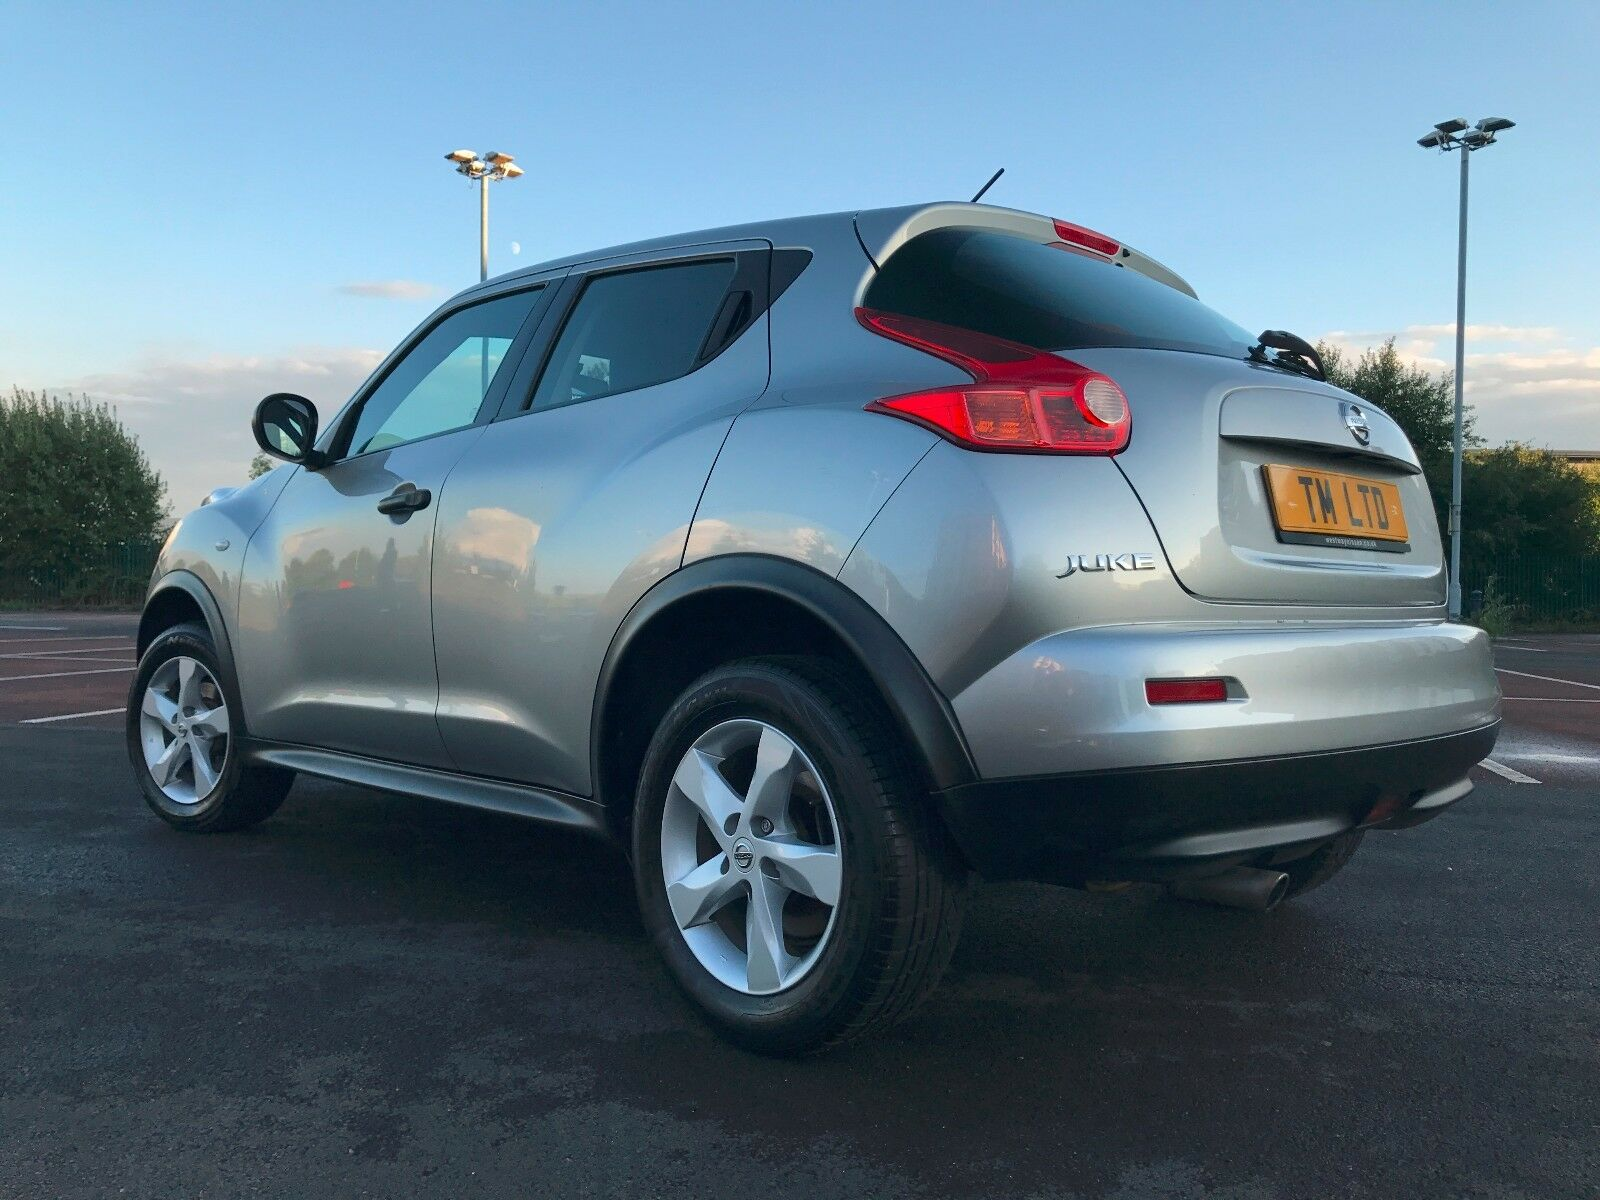 2010 60 nissan juke 1 6 visia silver petrol 72k 10 months mot bargain excellent 3. Black Bedroom Furniture Sets. Home Design Ideas